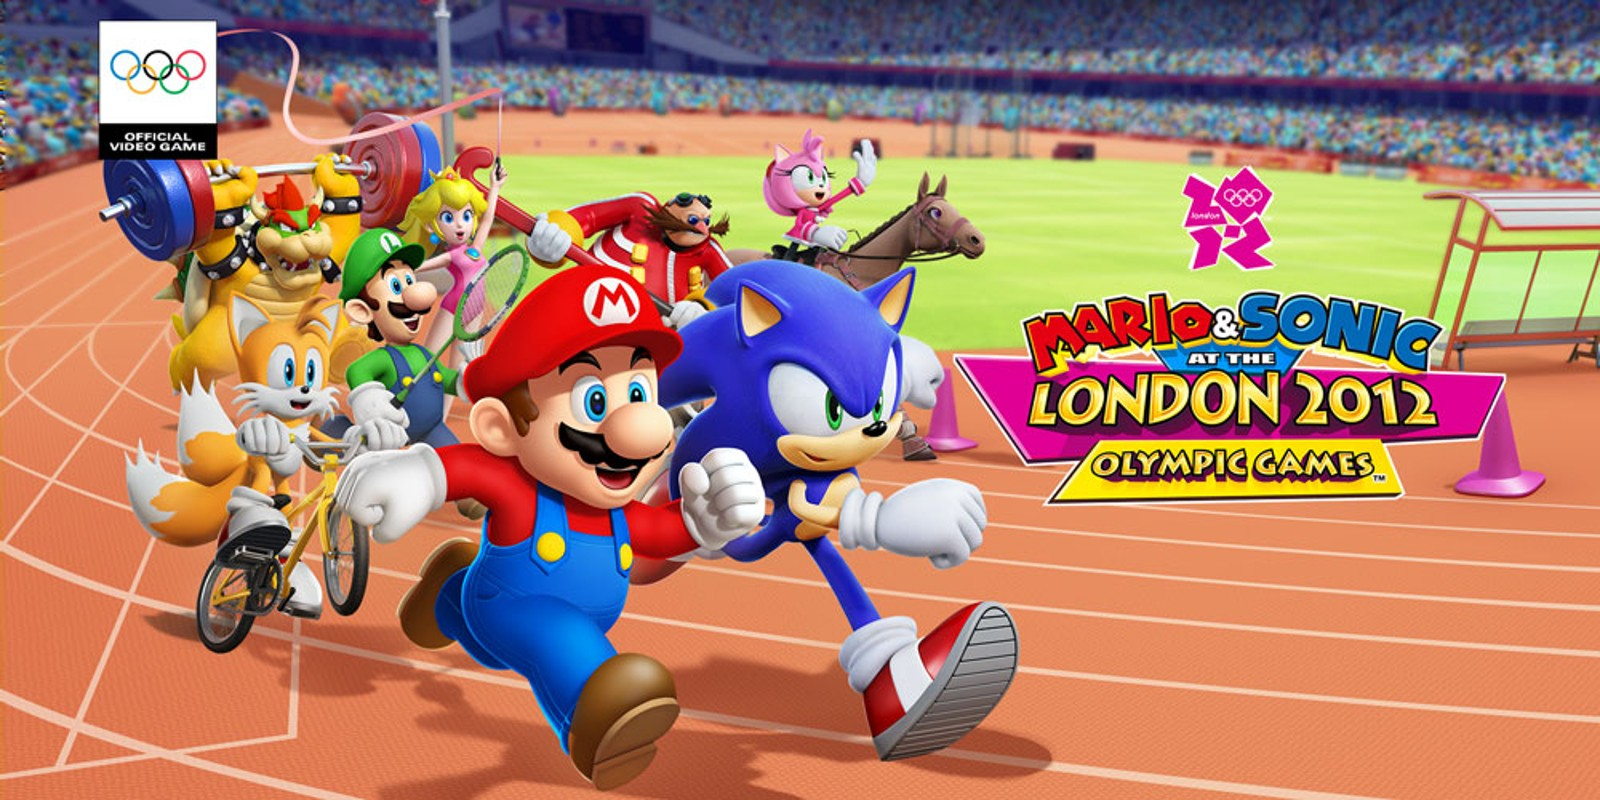 Mario   Sonic at the London 2012 Olympic Games         Wii   Games   Nintendo Mario   Sonic at the London 2012 Olympic Games